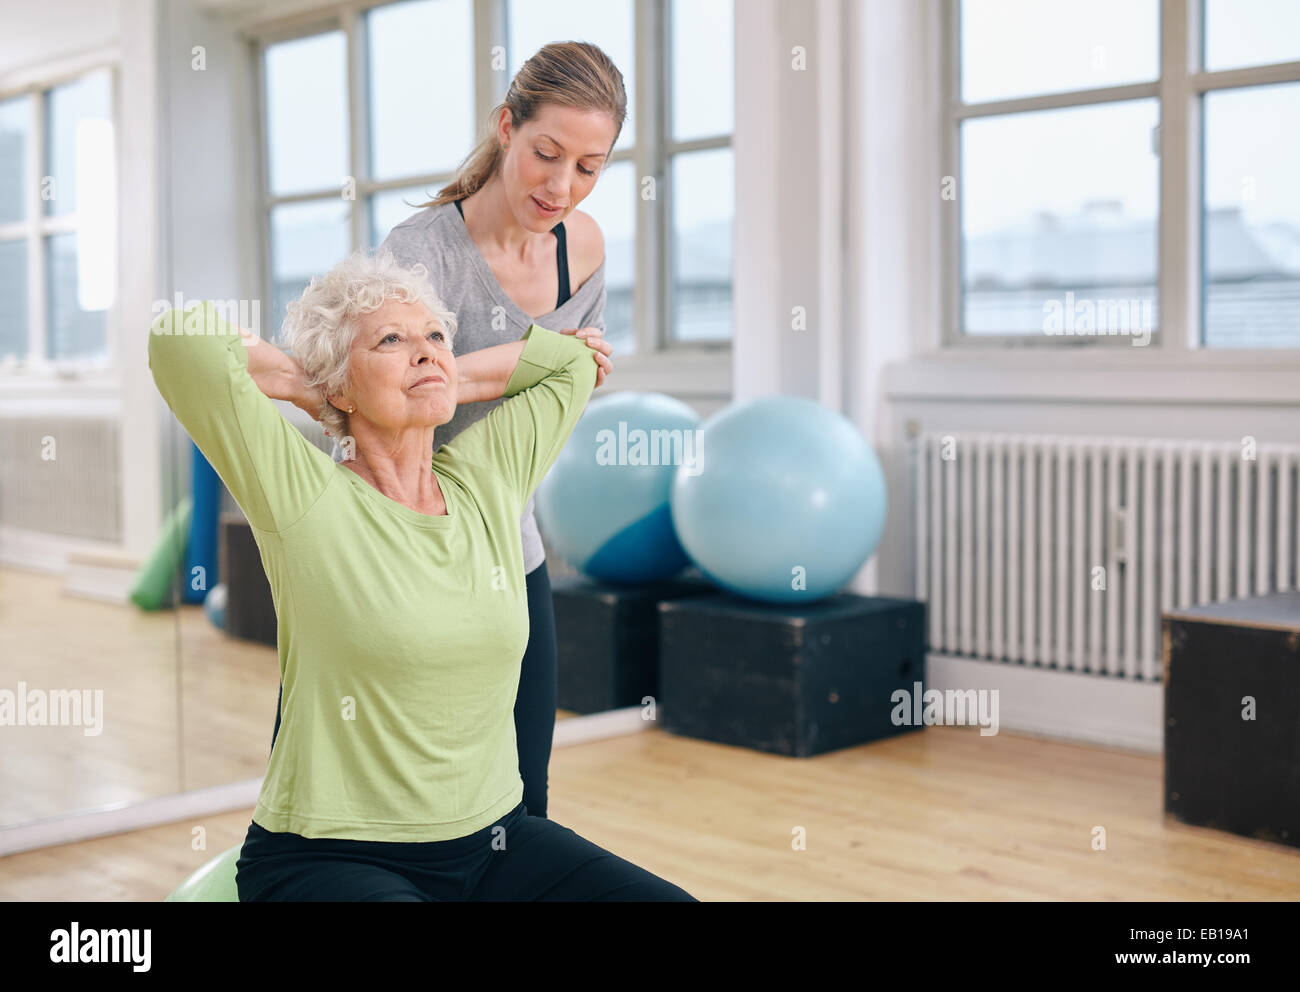 Senior women doing light pilates workout for back muscles with coach assistance. Trainer helping senior woman exercising - Stock Image